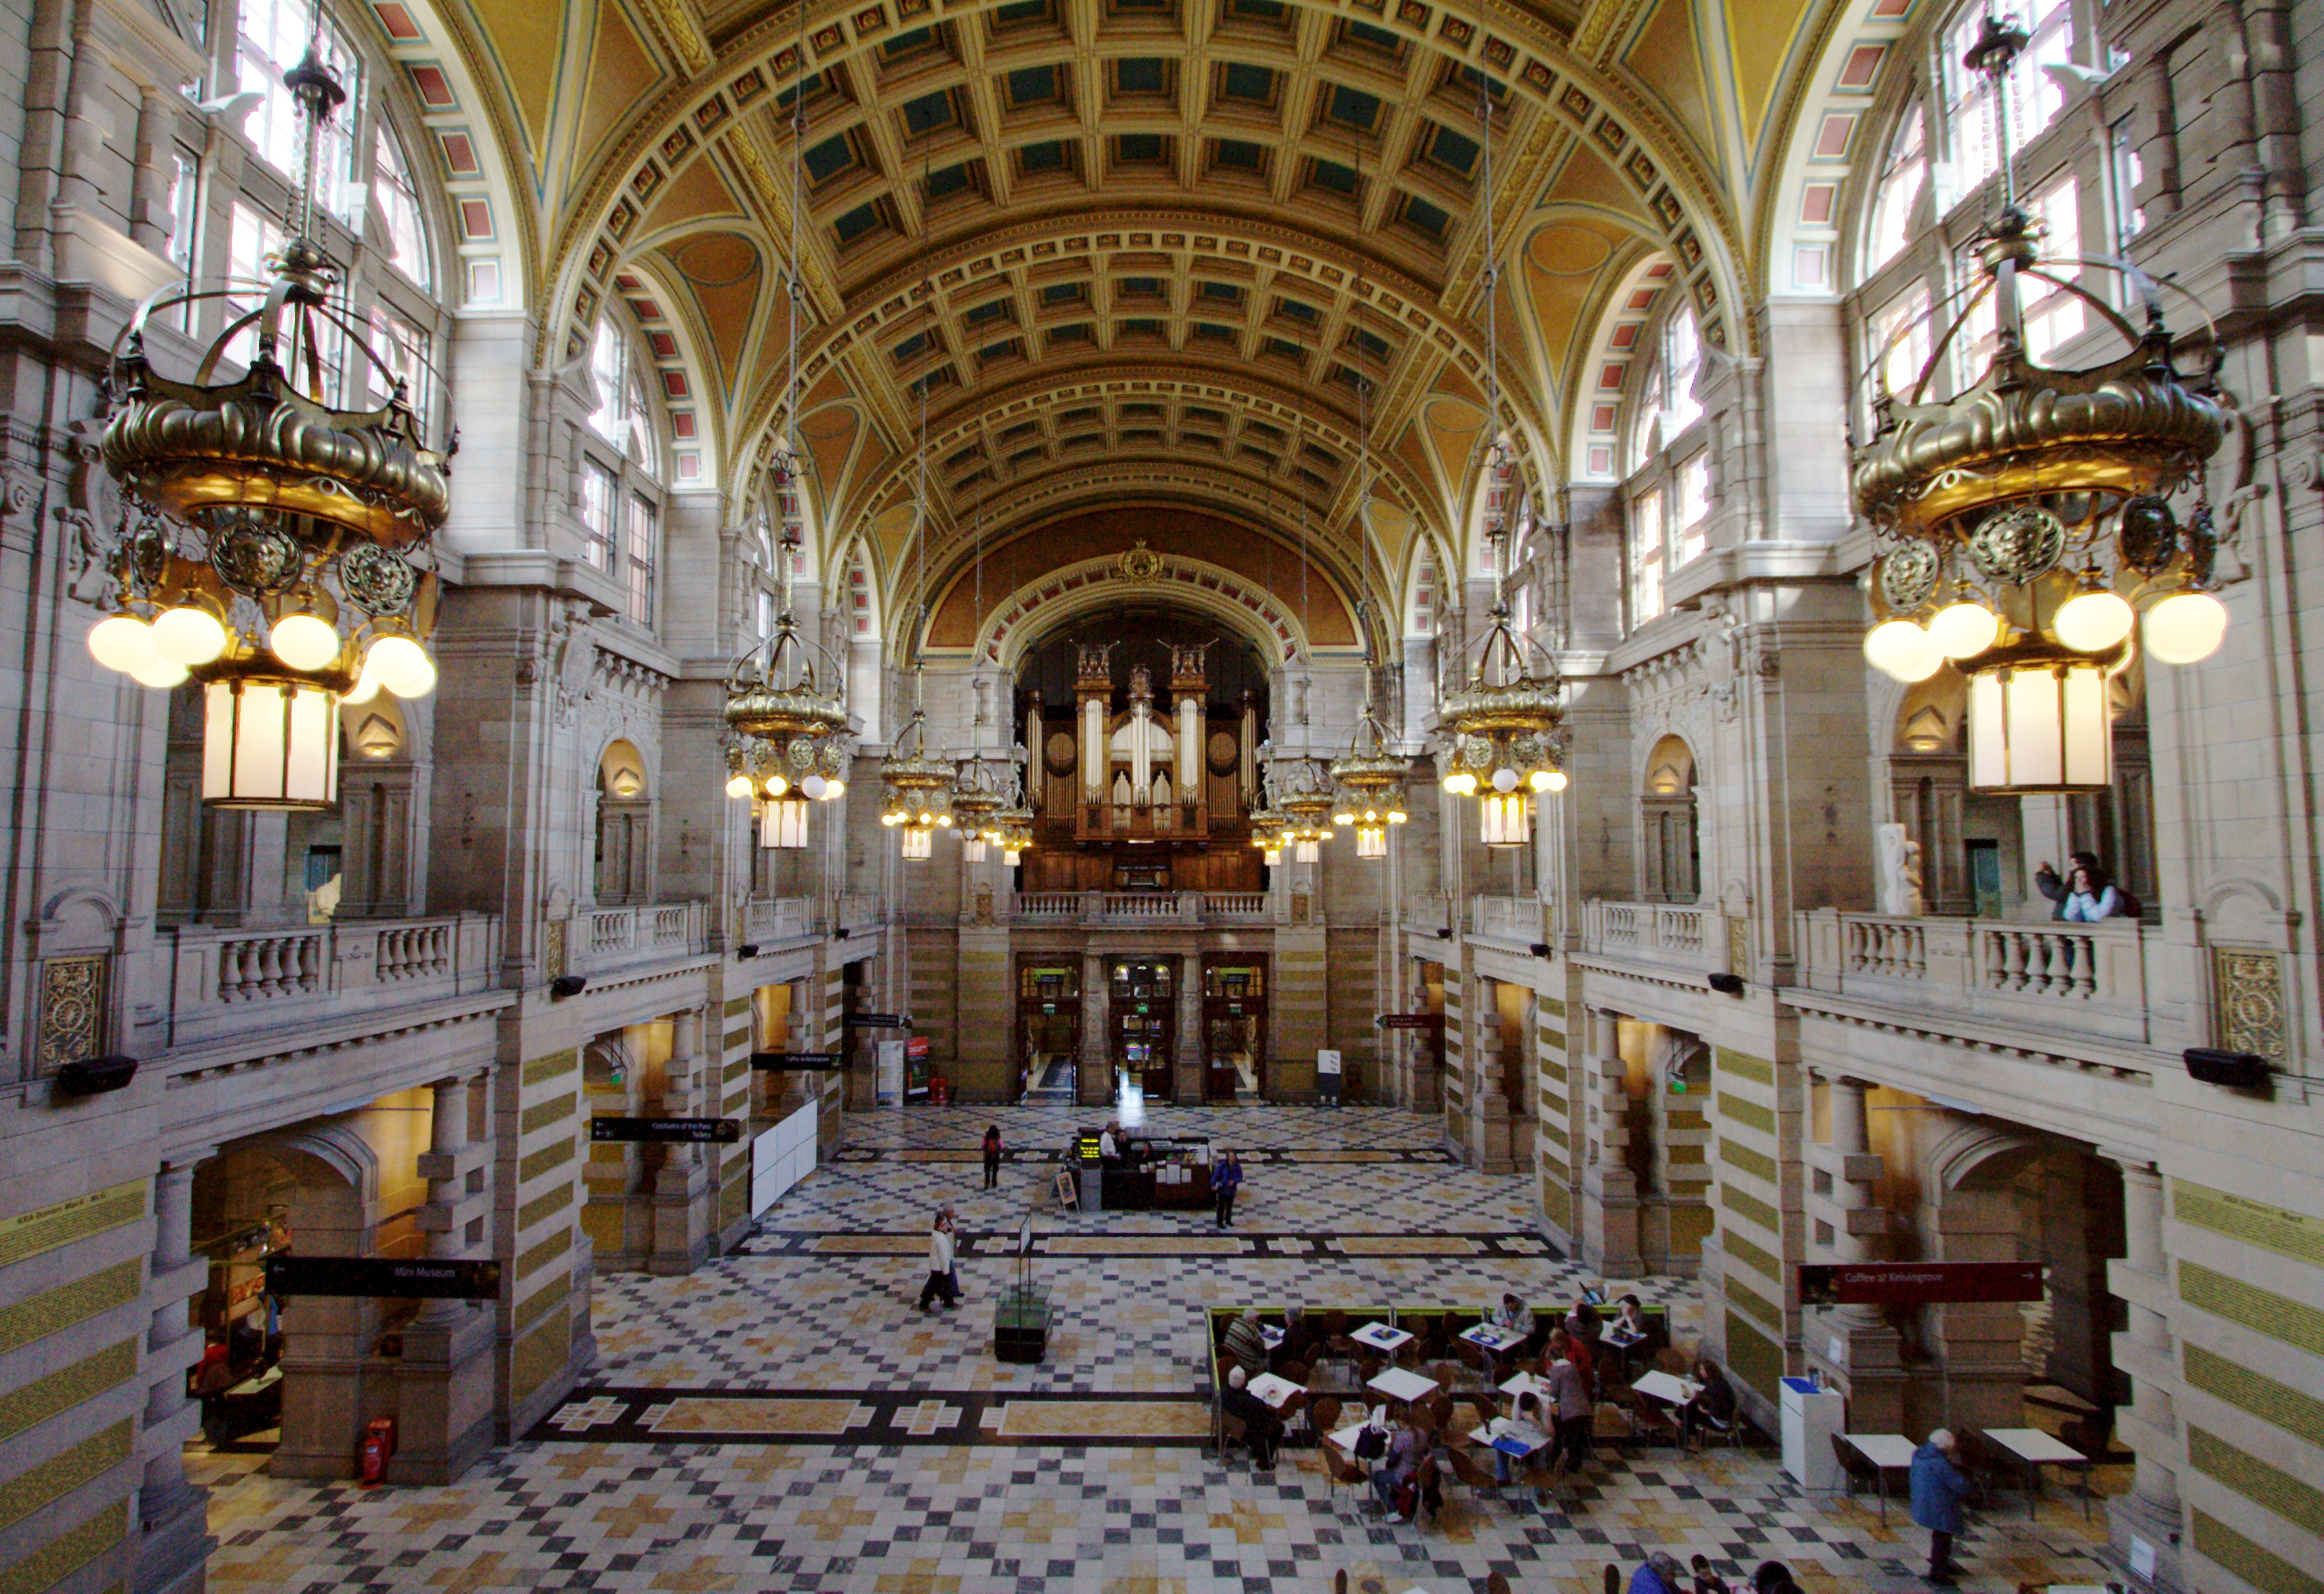 the museum and art gallery kelvingrove tourism essay The kelvingrove art gallery and museum glasgow is one of the great civic art institutions and houses some 8,000 objects - 50% off with national art pass kelvingrove is one of the great civic art institutions its 22 galleries house some 8,000 objects, from collections of international significance.